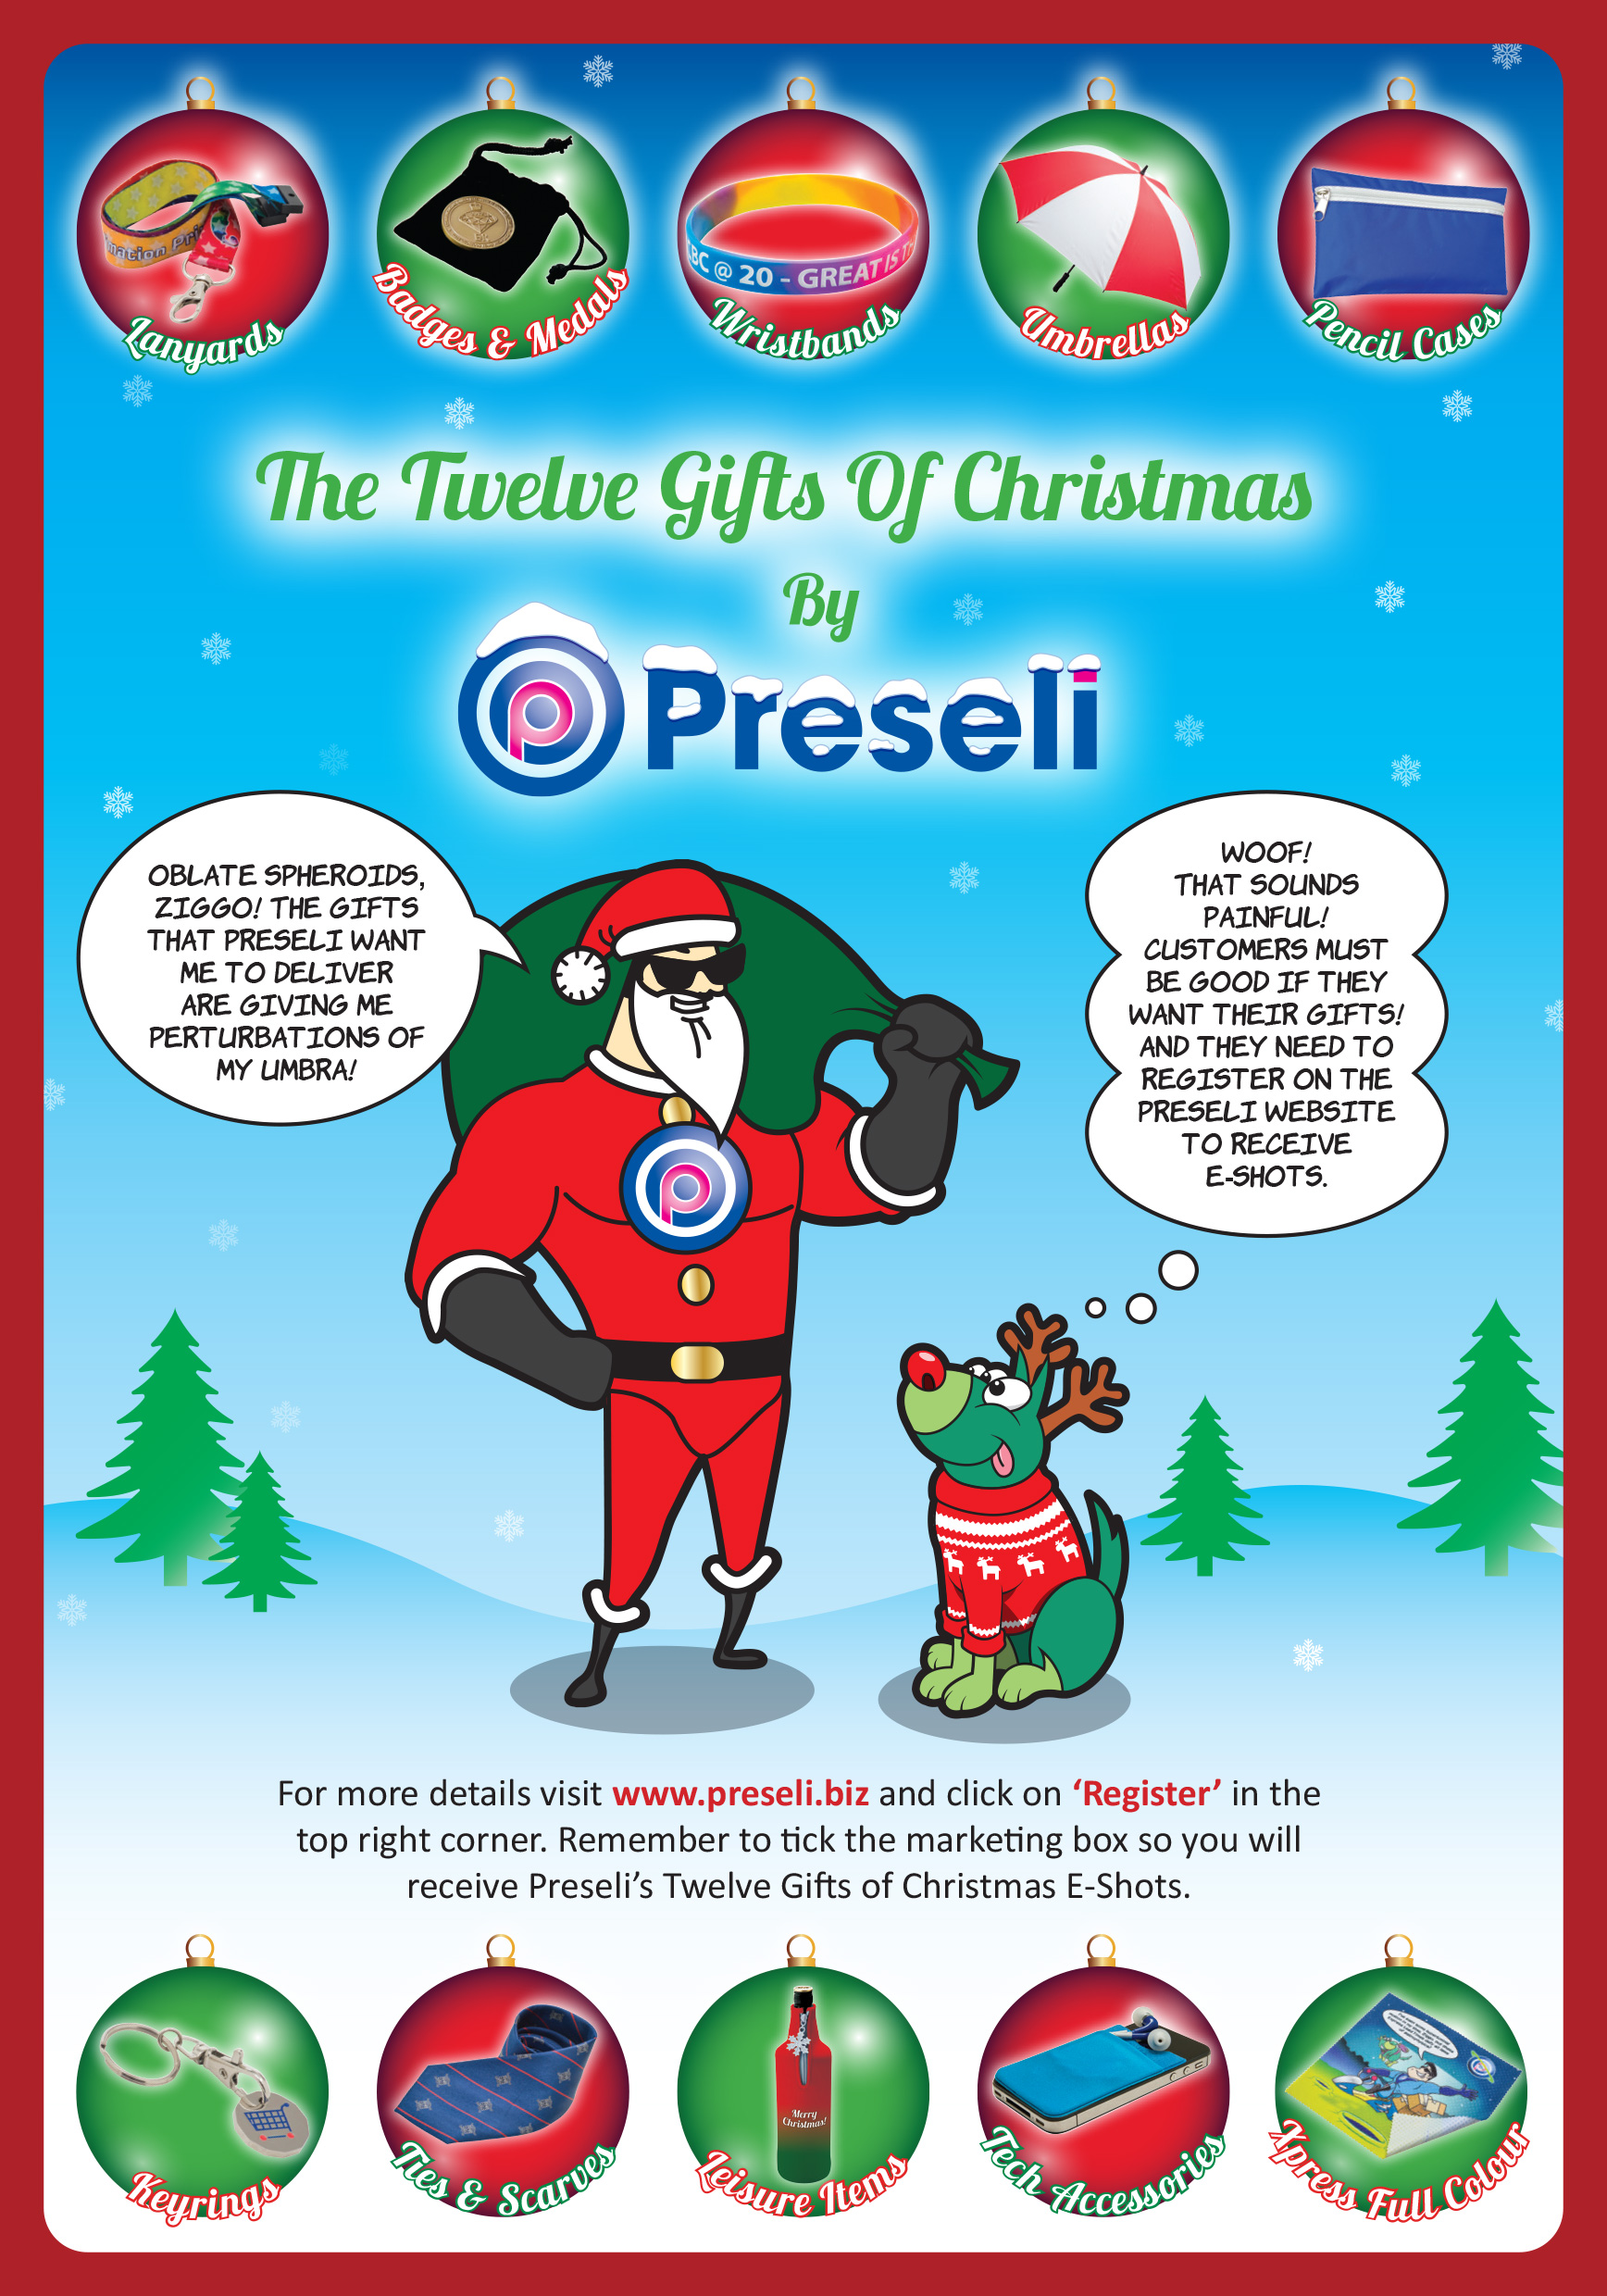 Latest News from Preseli Promotional Products